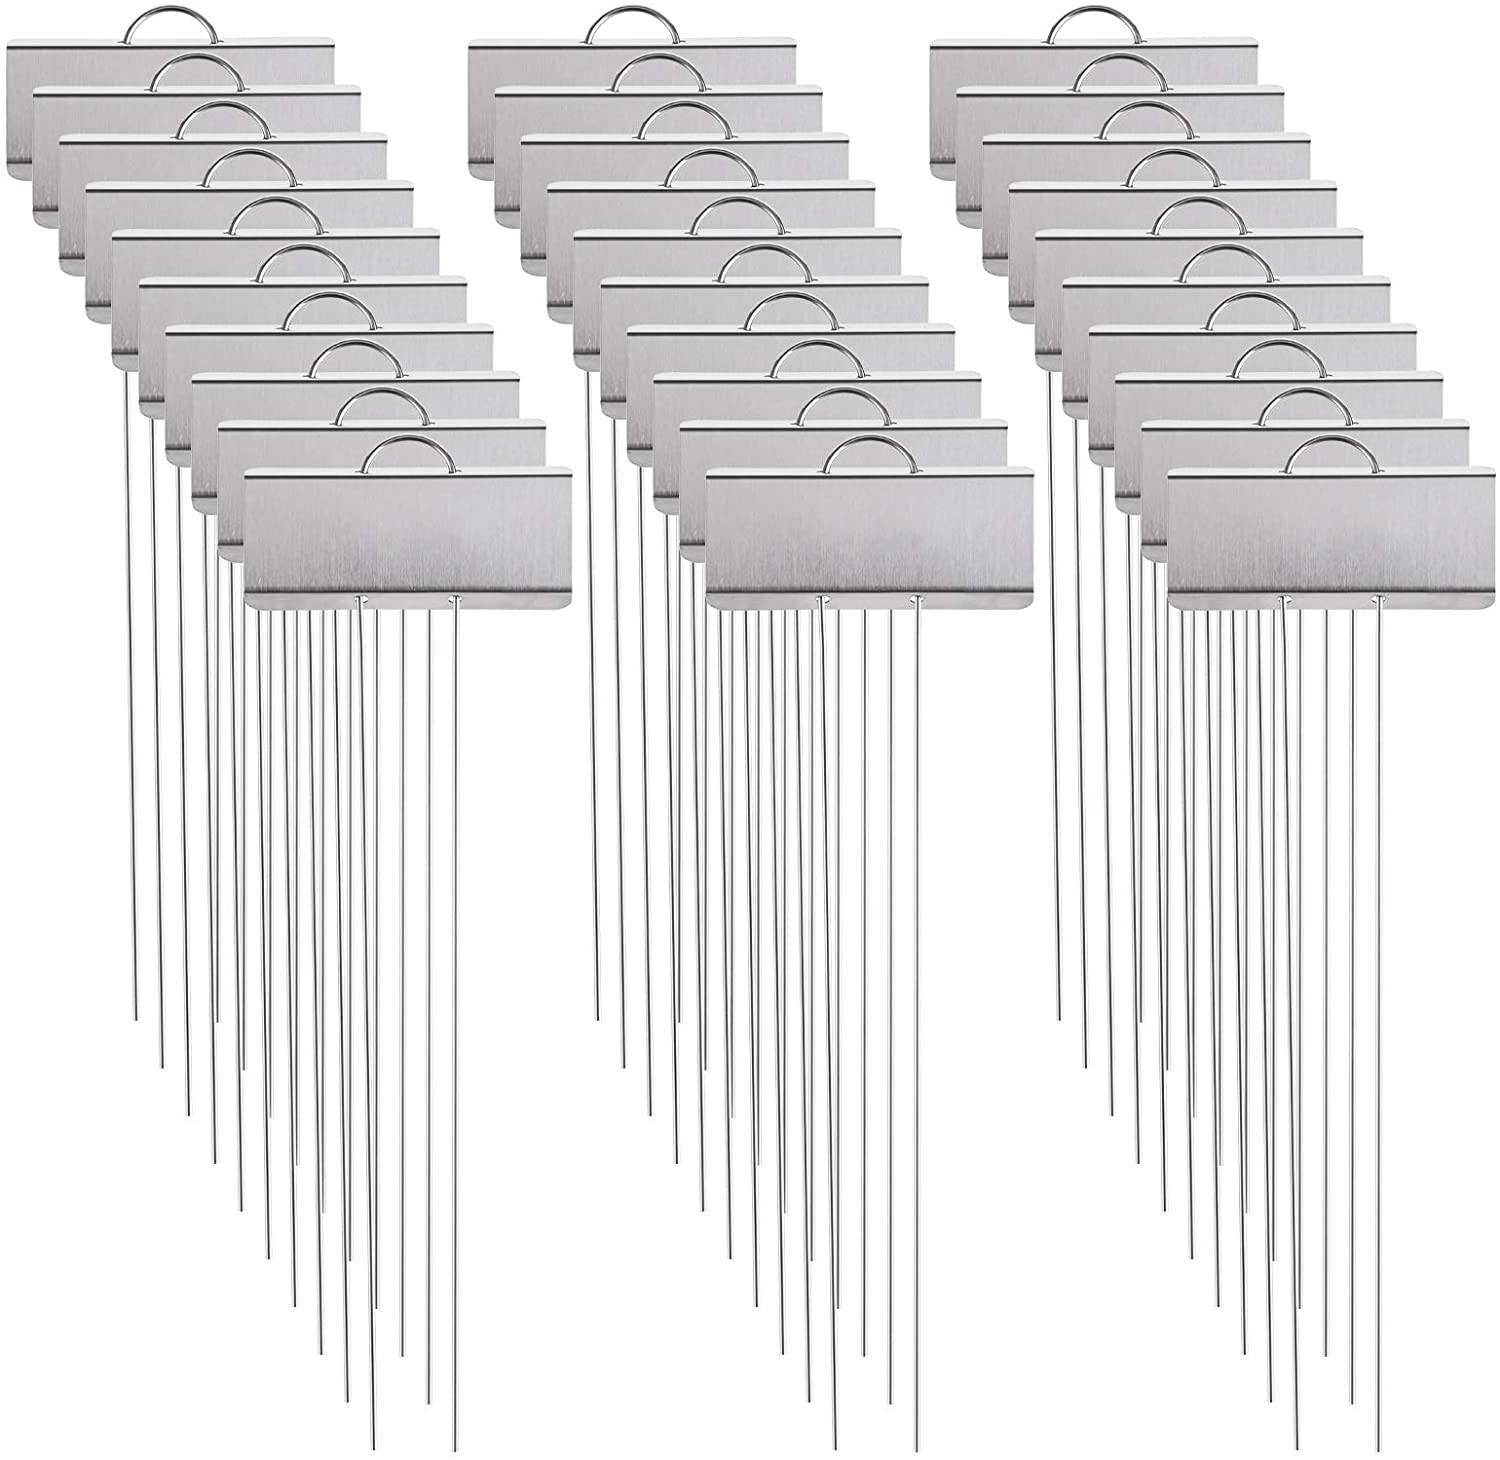 Foraineam 30 Pack 11.5 inch Stainless Steel Garden Markers Weatherproof Metal Plant Labels Large Planting Seedling Stake Signs